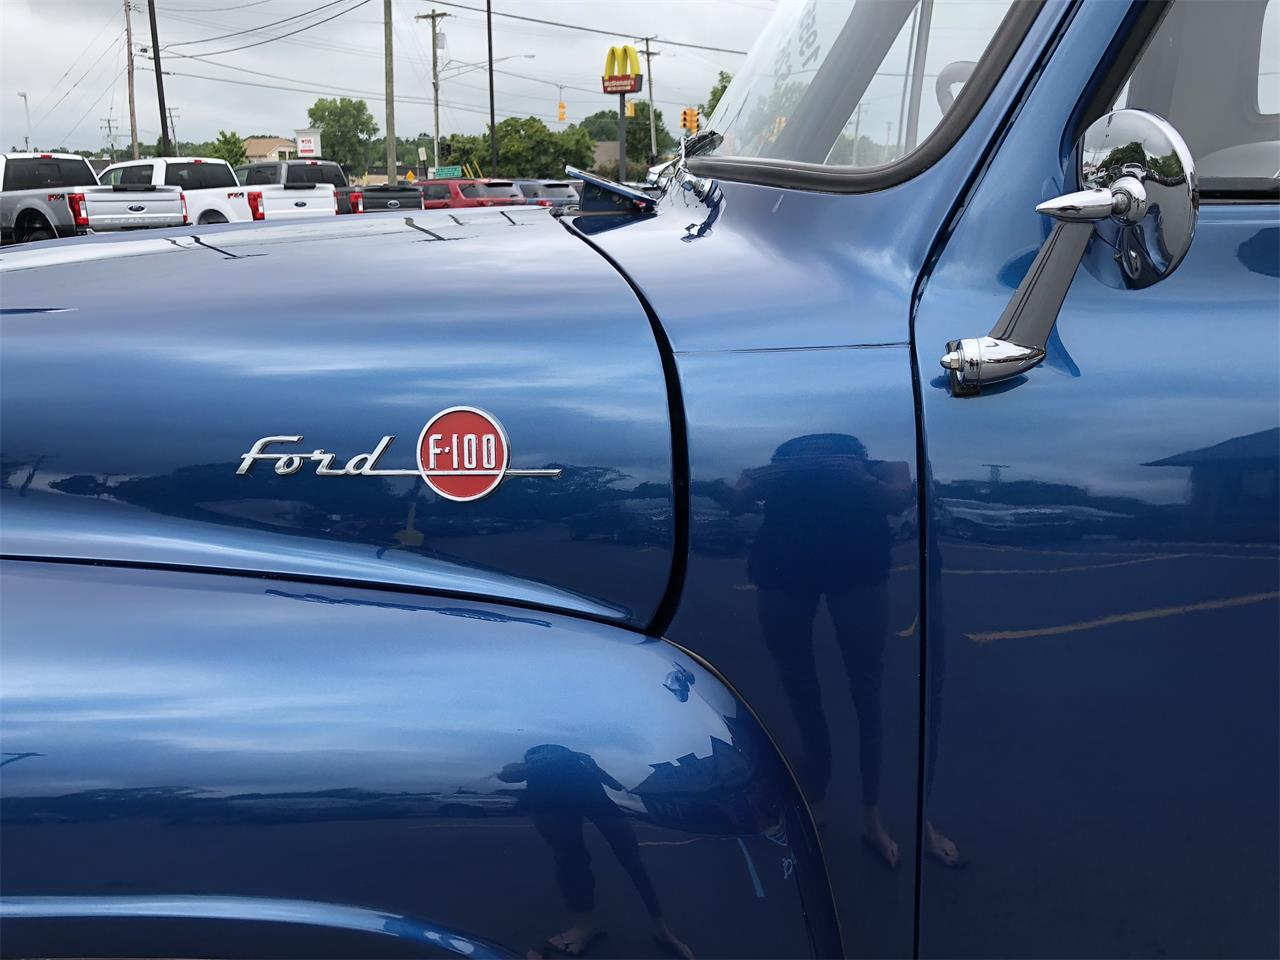 1955 Ford F100 for sale in Saint Clair, MI – photo 19